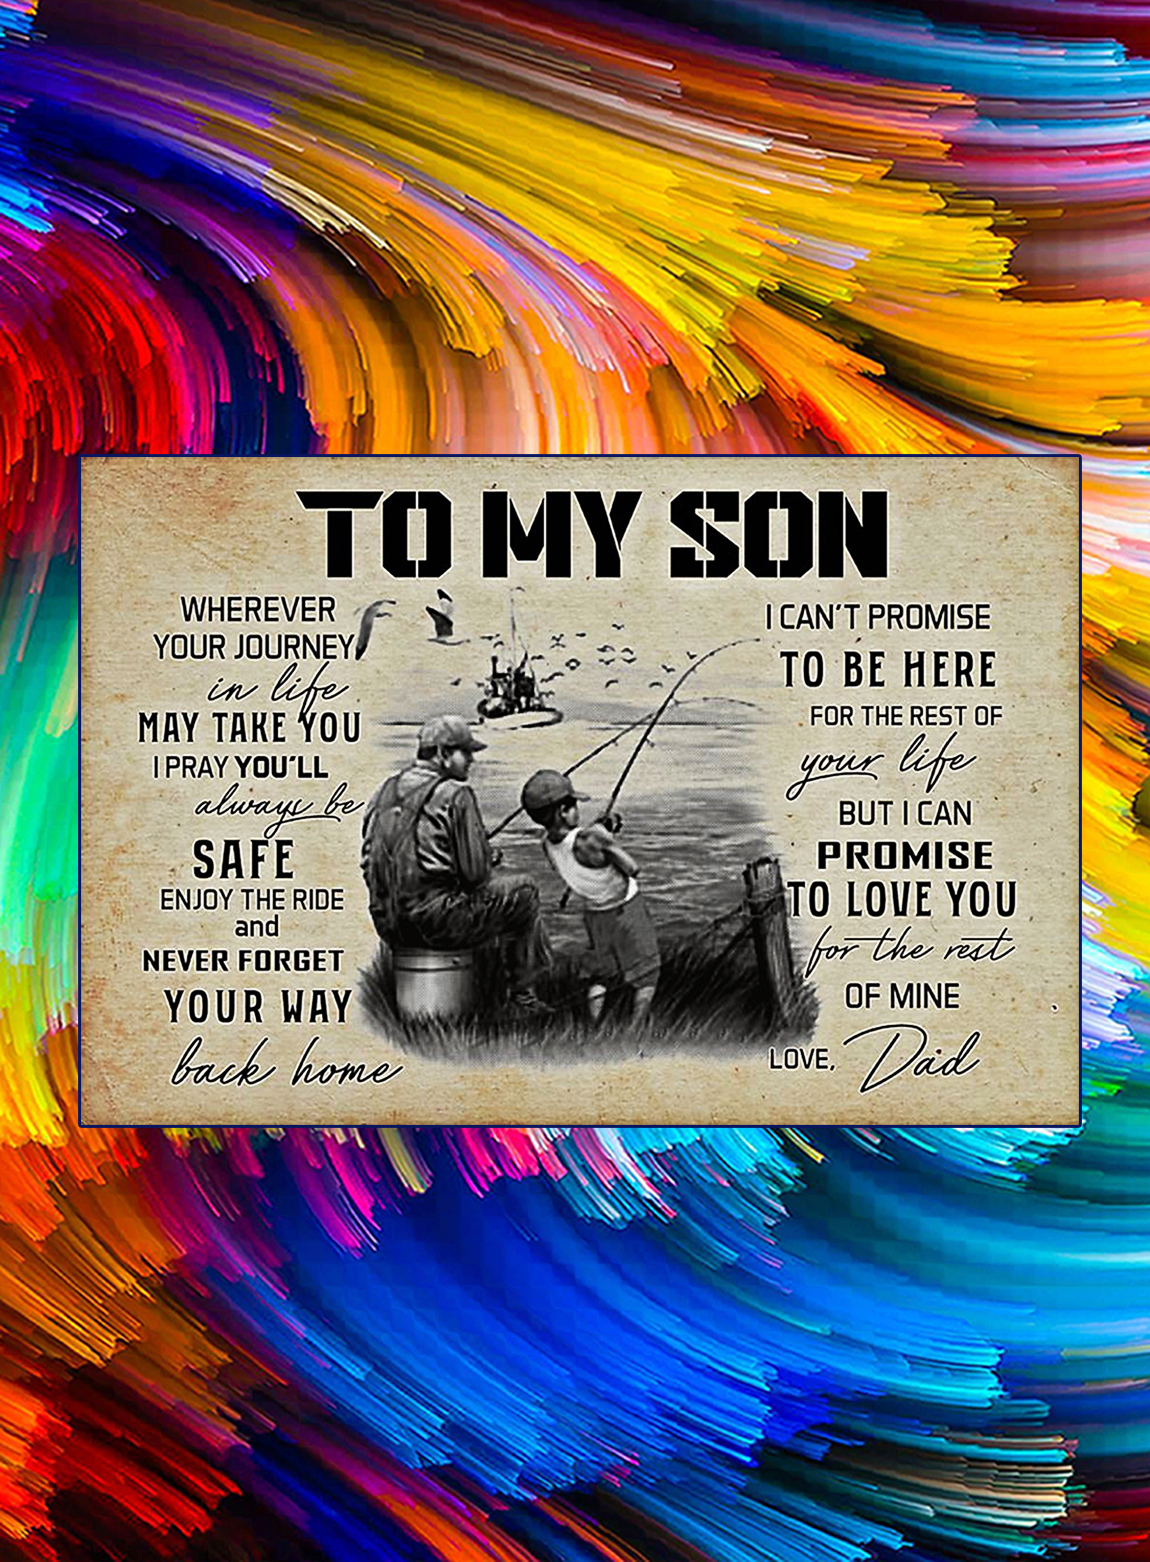 Fishing to my son love dad poster - A3